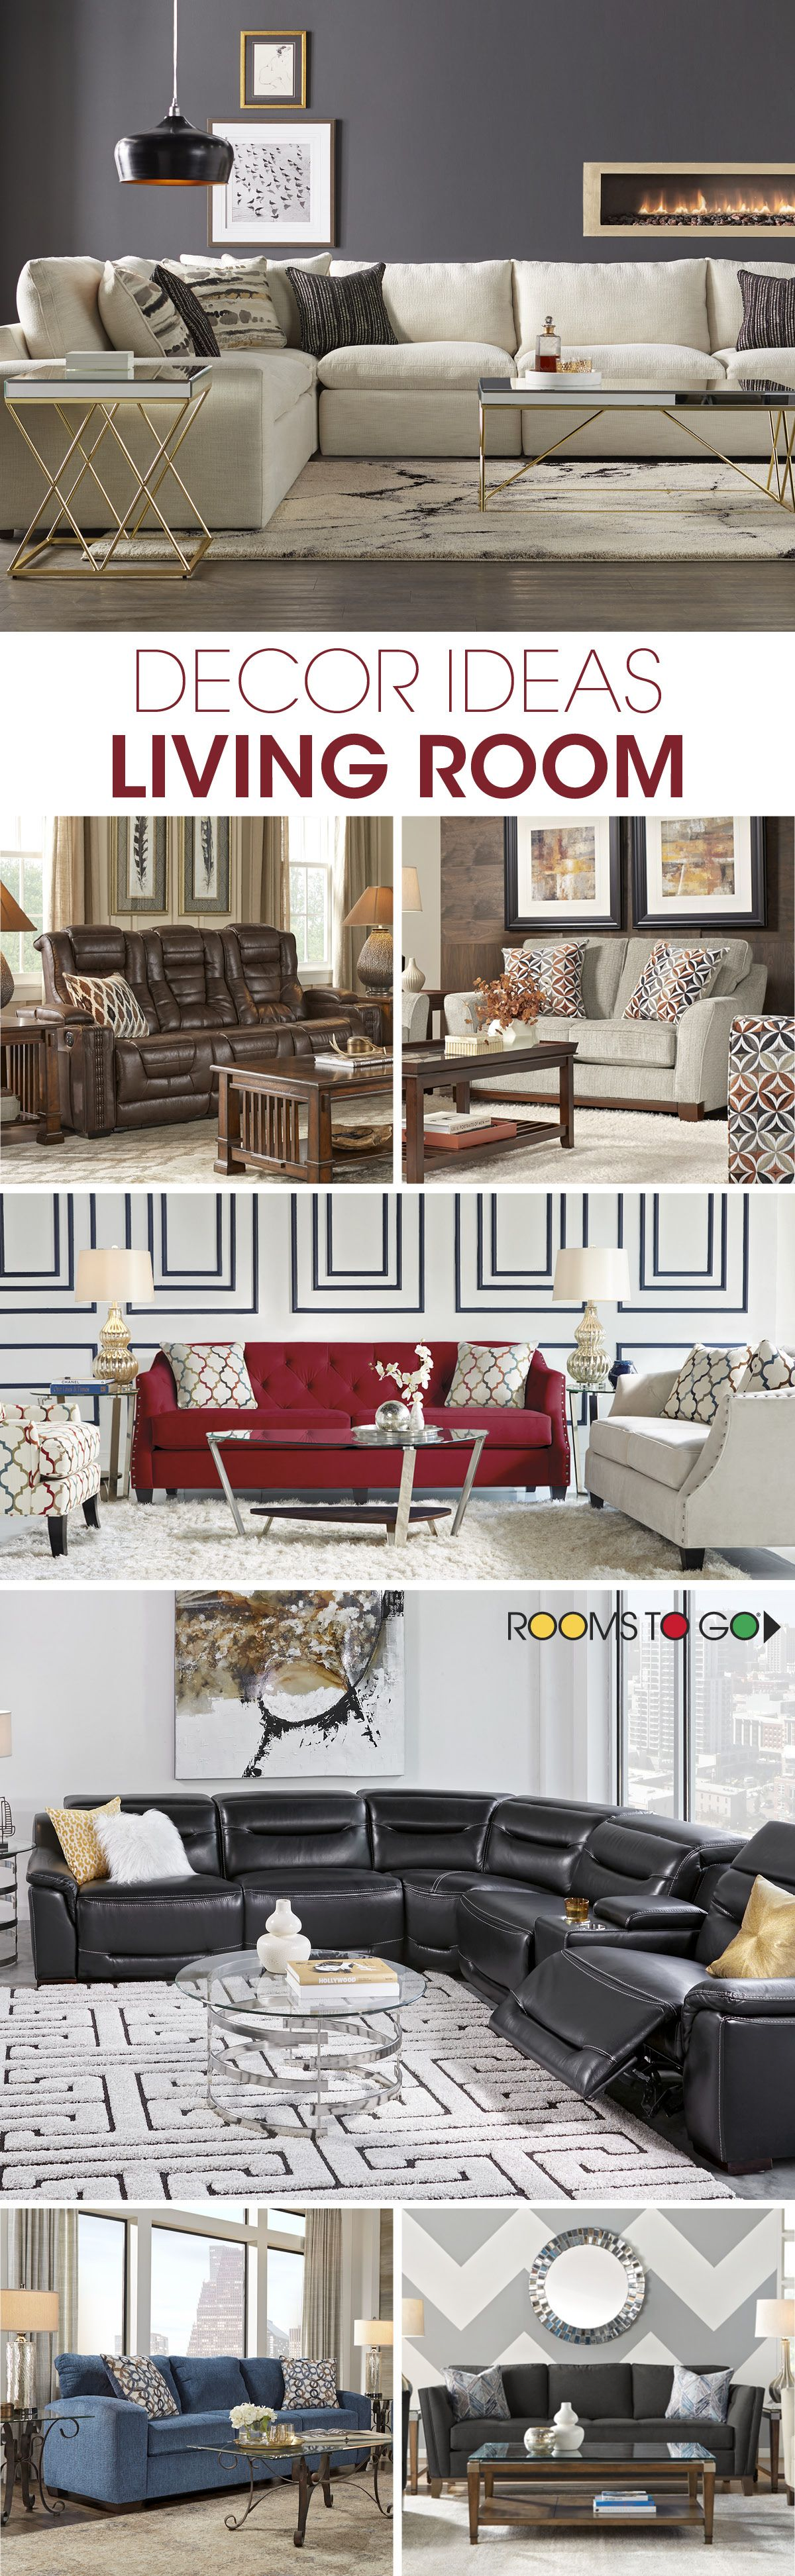 Looking For Decor Ideas For Your Living Room? Add Accent Pieces, Wall Art,